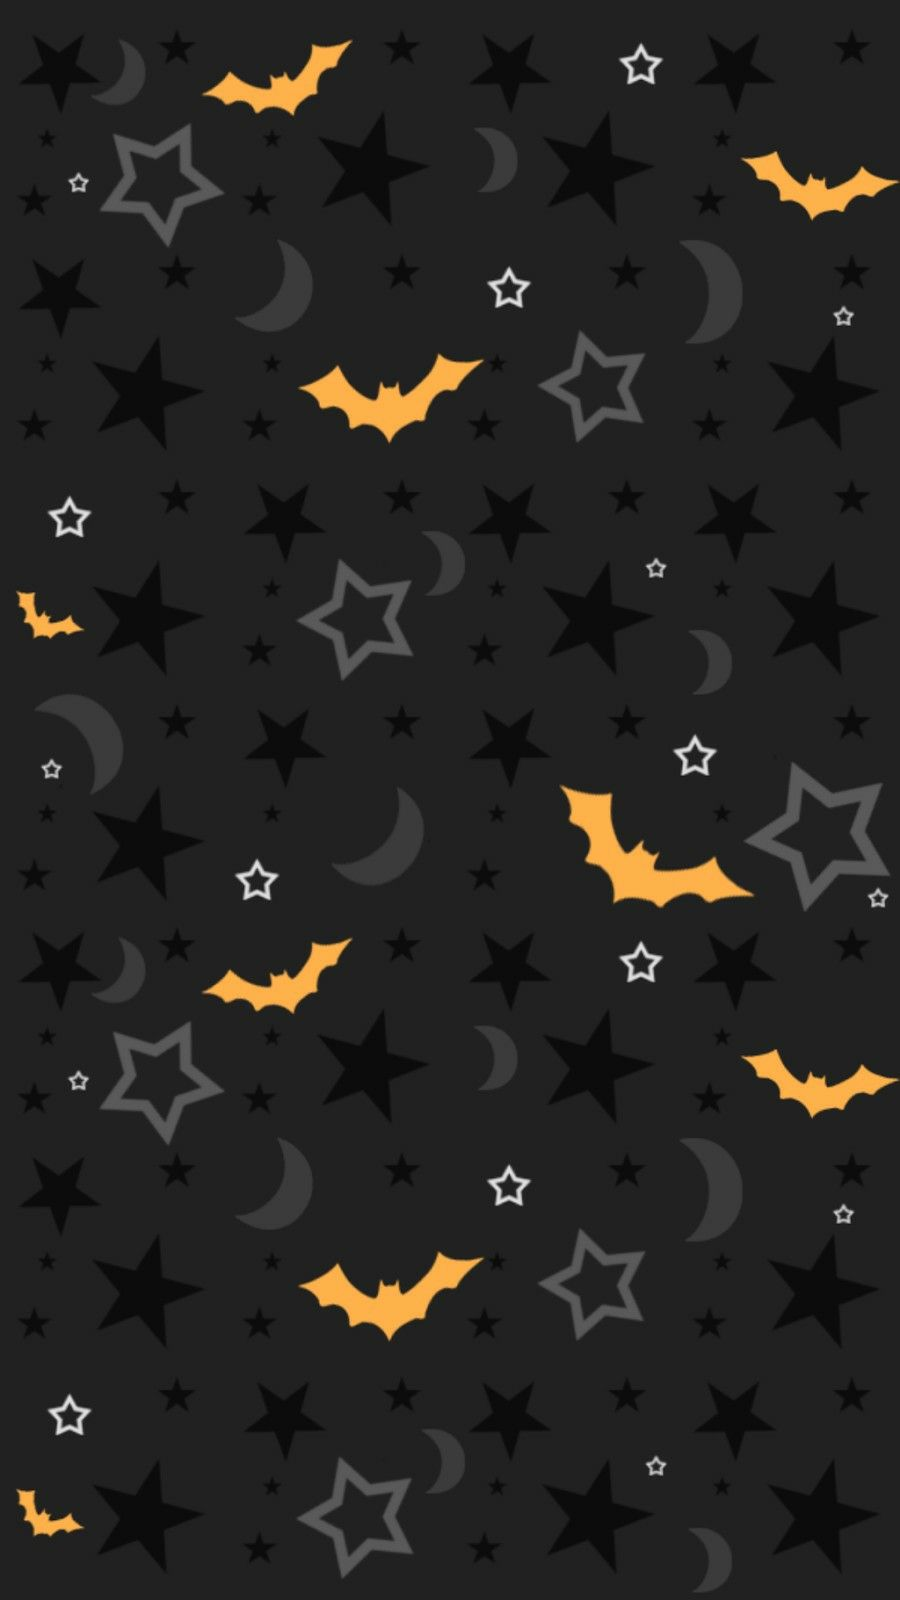 Halloween Iphone Wallpaper Halloween Wallpaper Iphone Halloween Wallpaper Fall Wallpaper